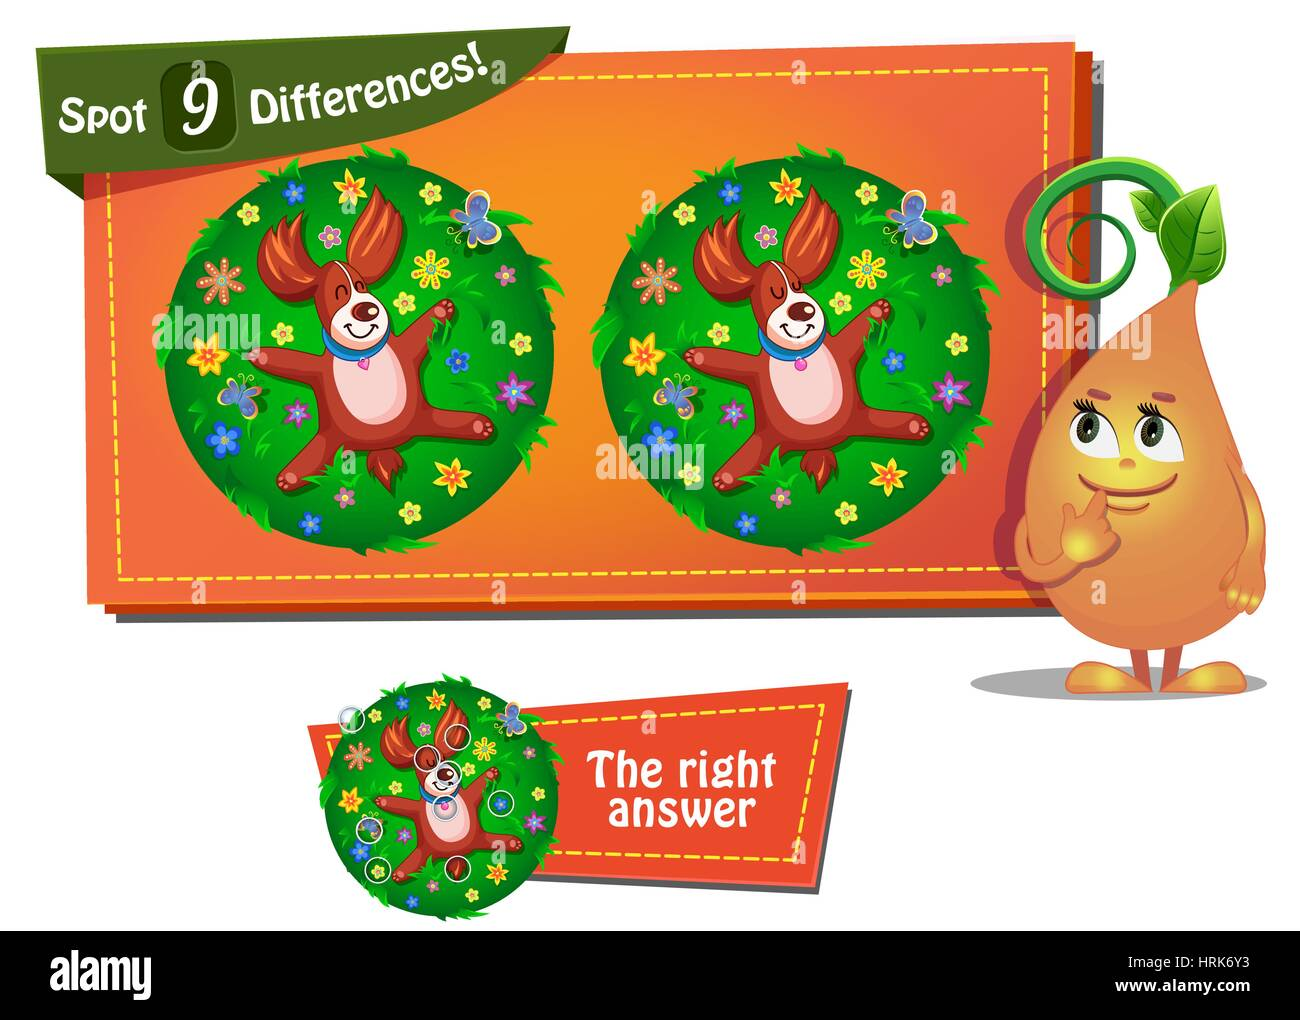 Find Differences Stock Photos Amp Find Differences Stock